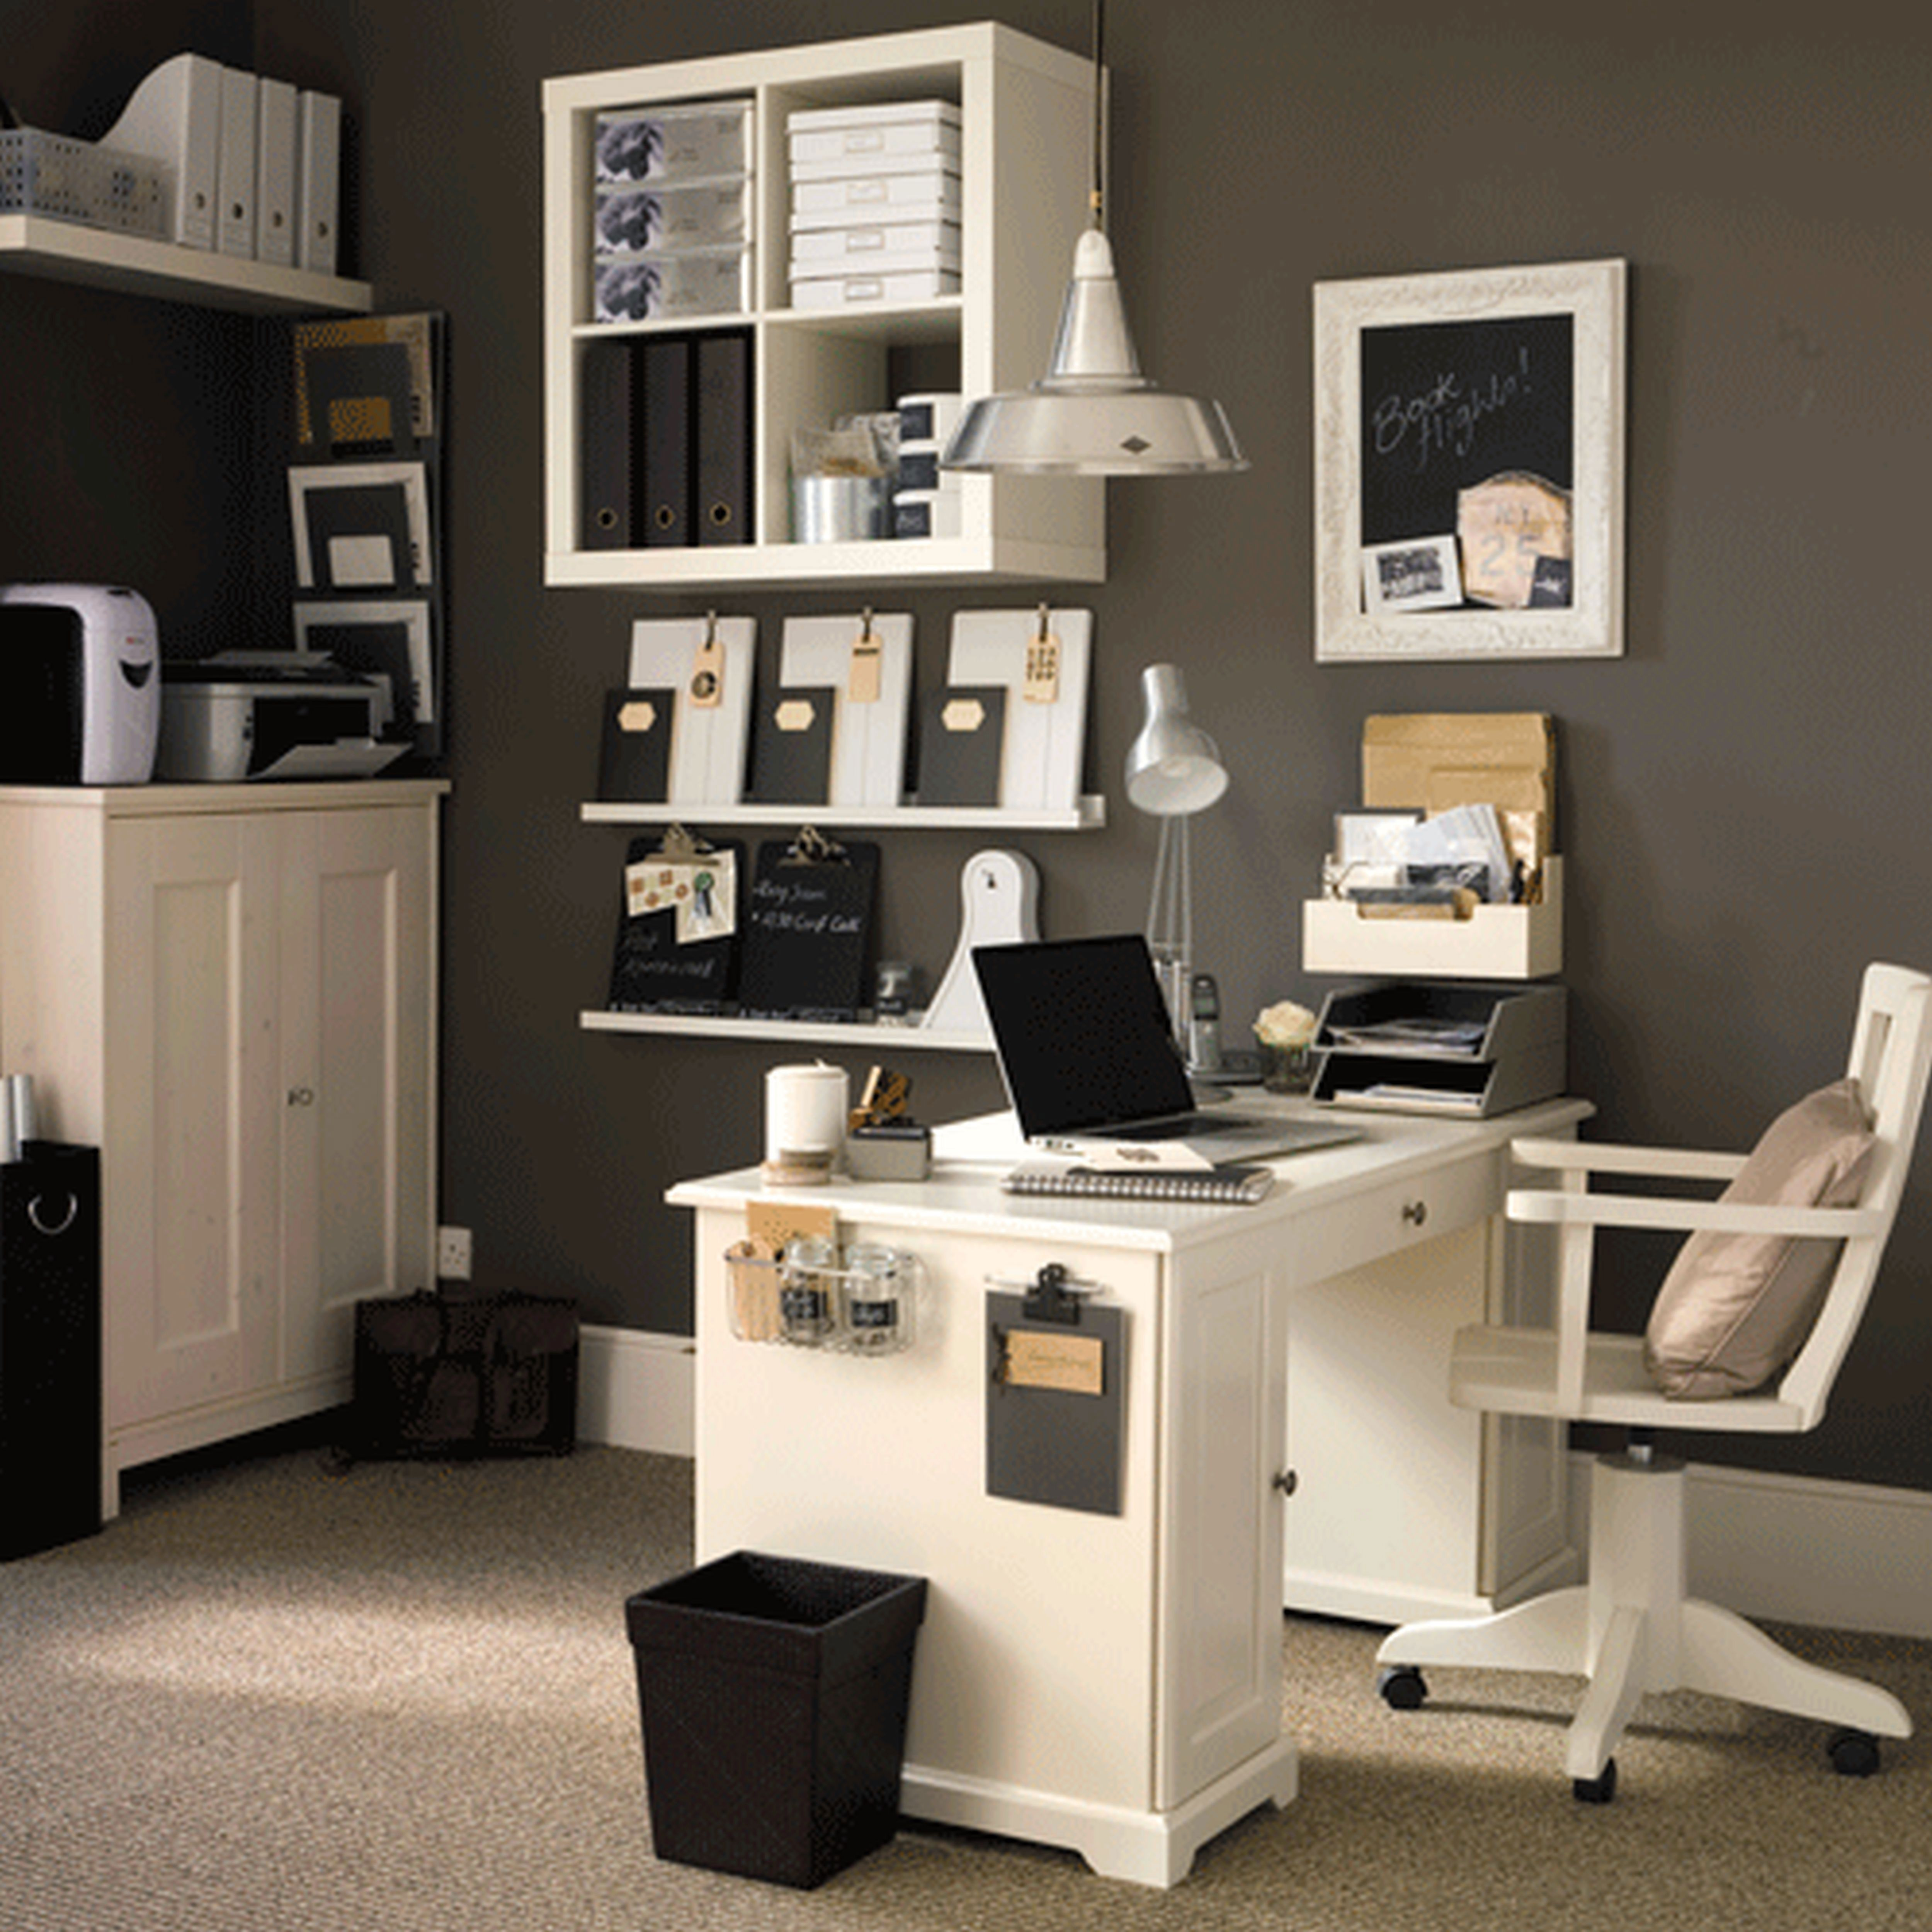 20 Amazing Home Office Design Ideas For Small Business ...